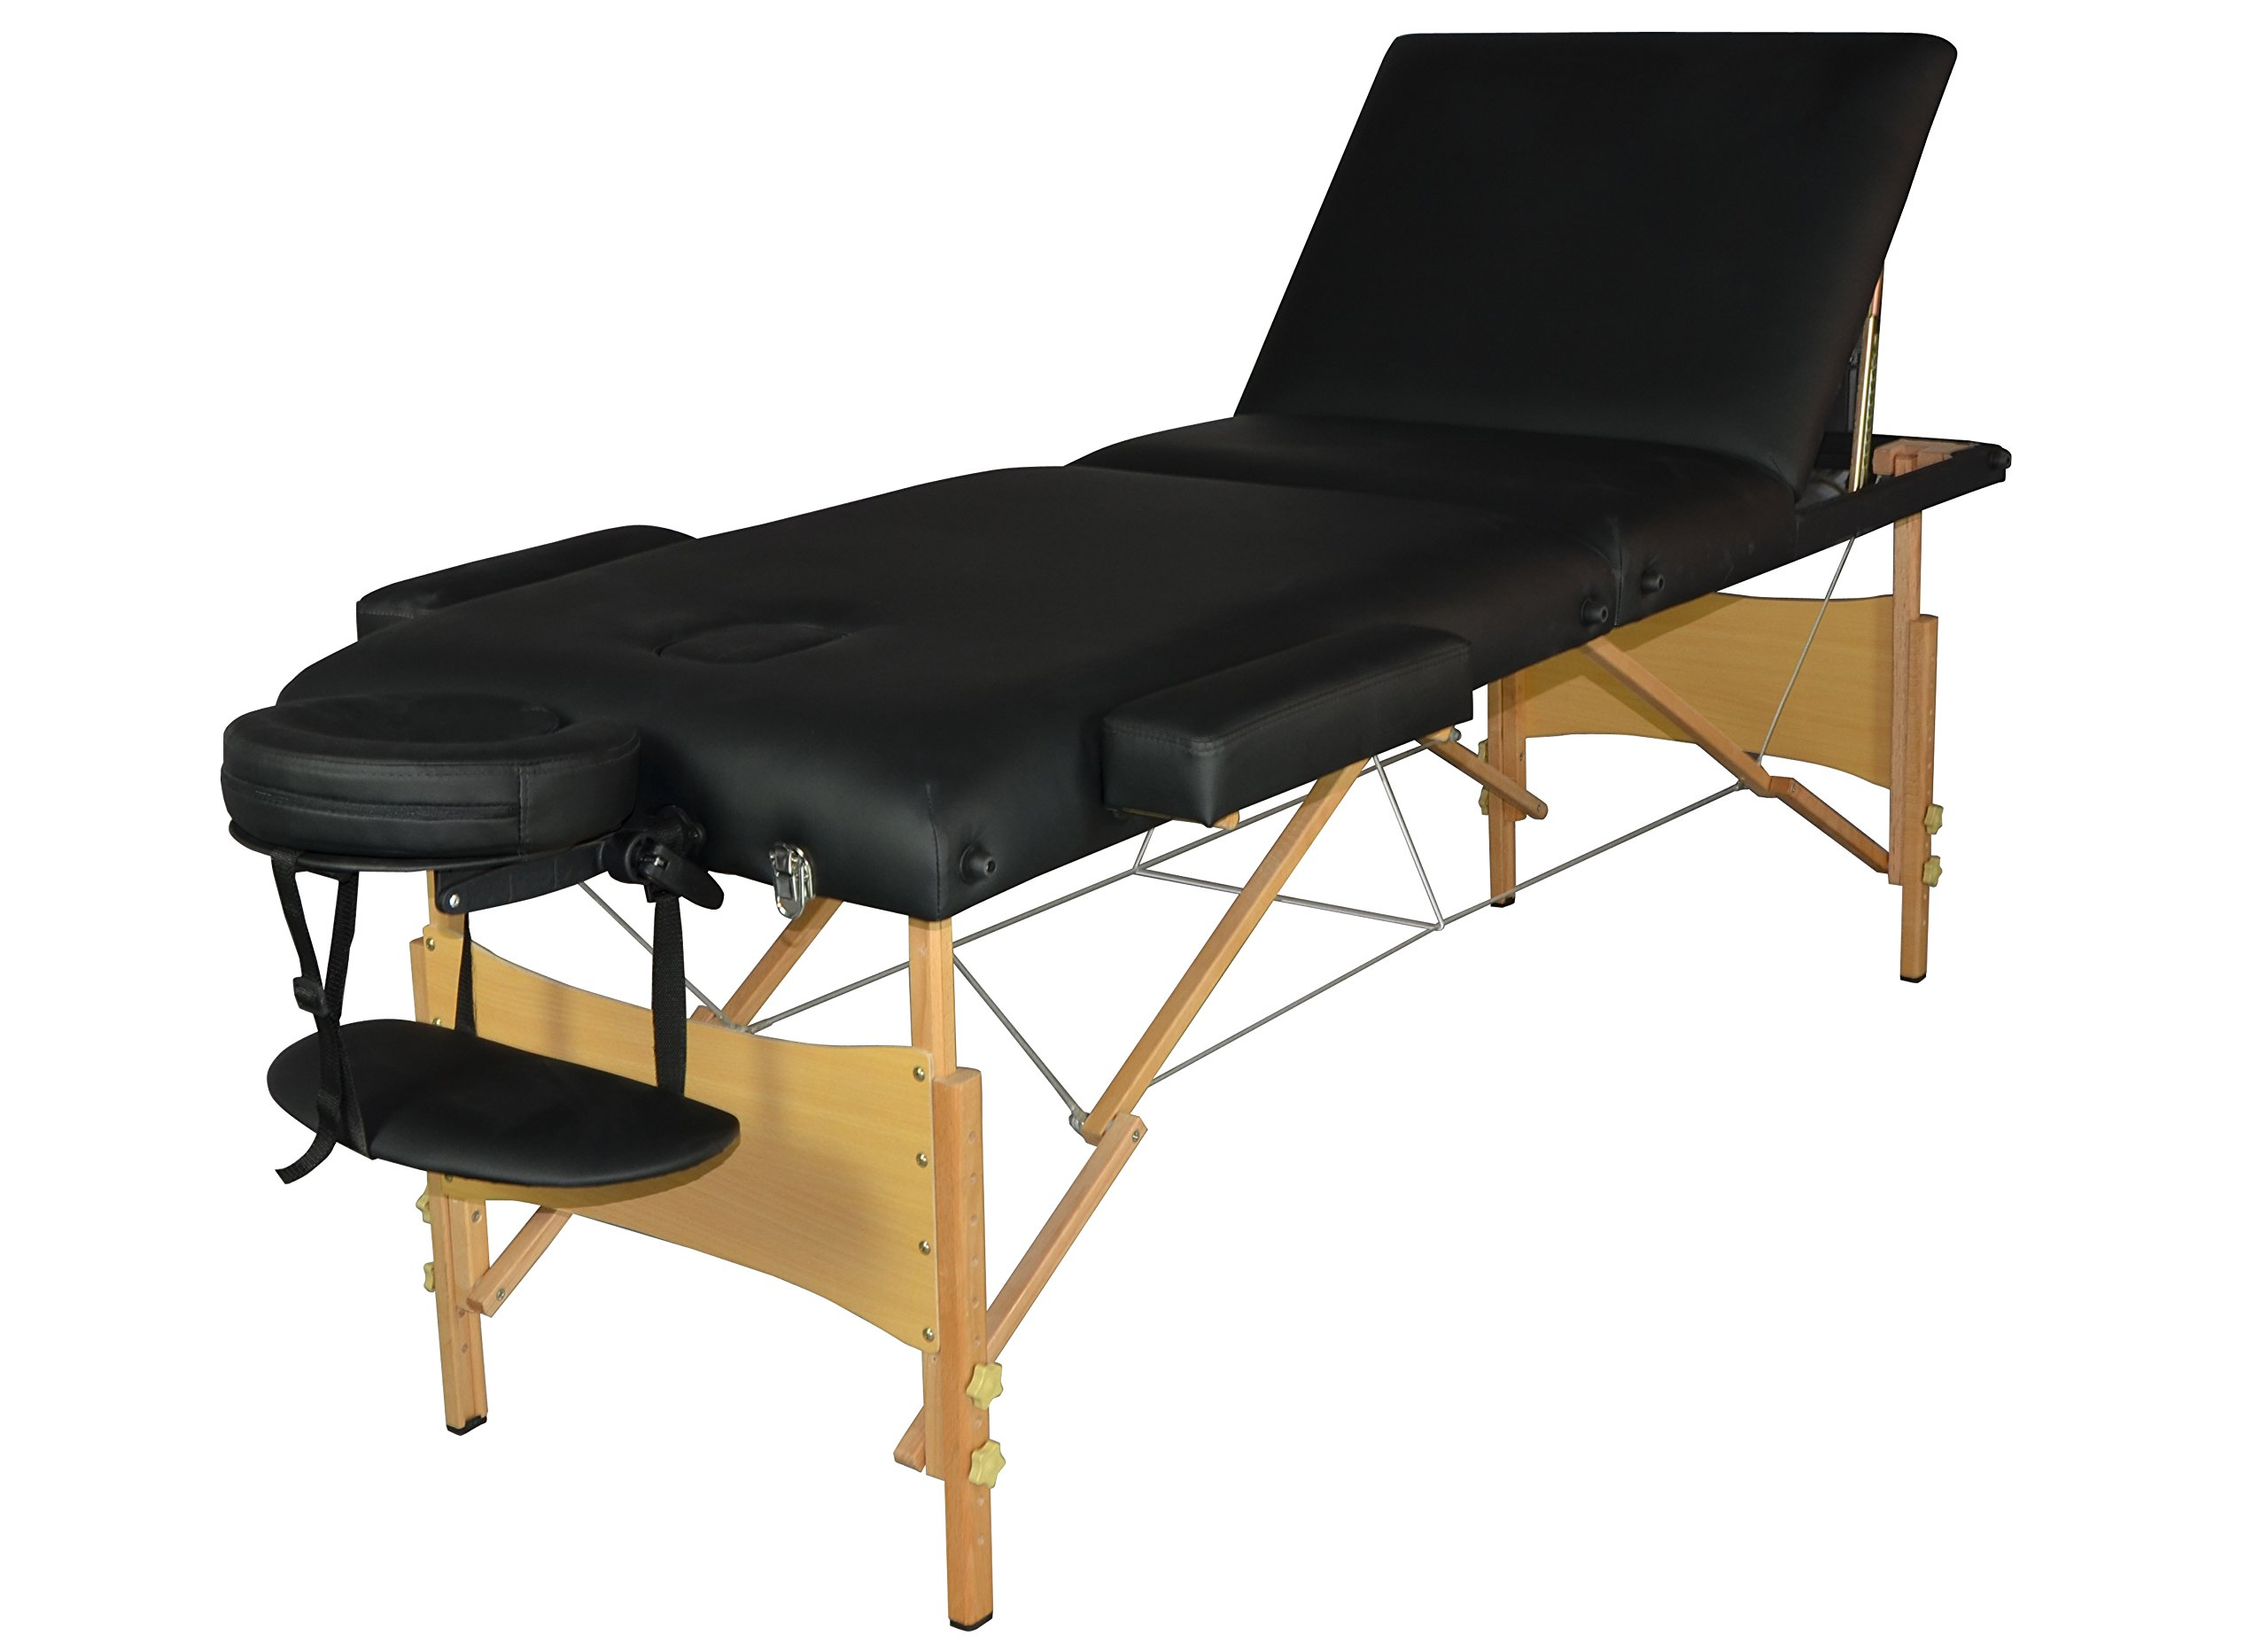 BestMassage 3 Section Portable Massage Table Facial SPA Bed Carry Case